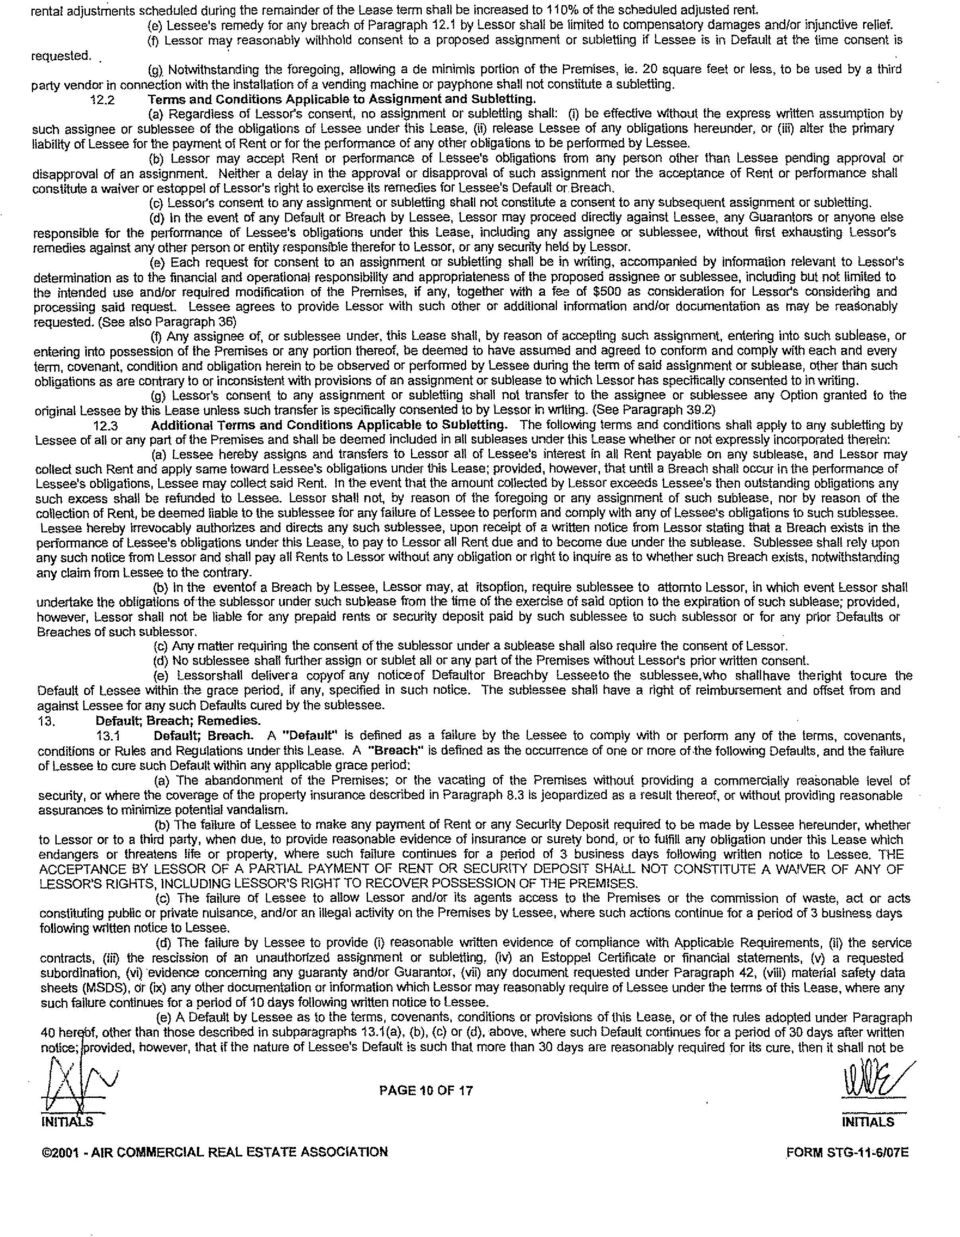 AIR COMMERCIAL REAL ESTATE ASSOCIA Non FORM STG11 07E F Lessor May Reasonably Withhold Consent To A Proposed Assignment Or Subetling